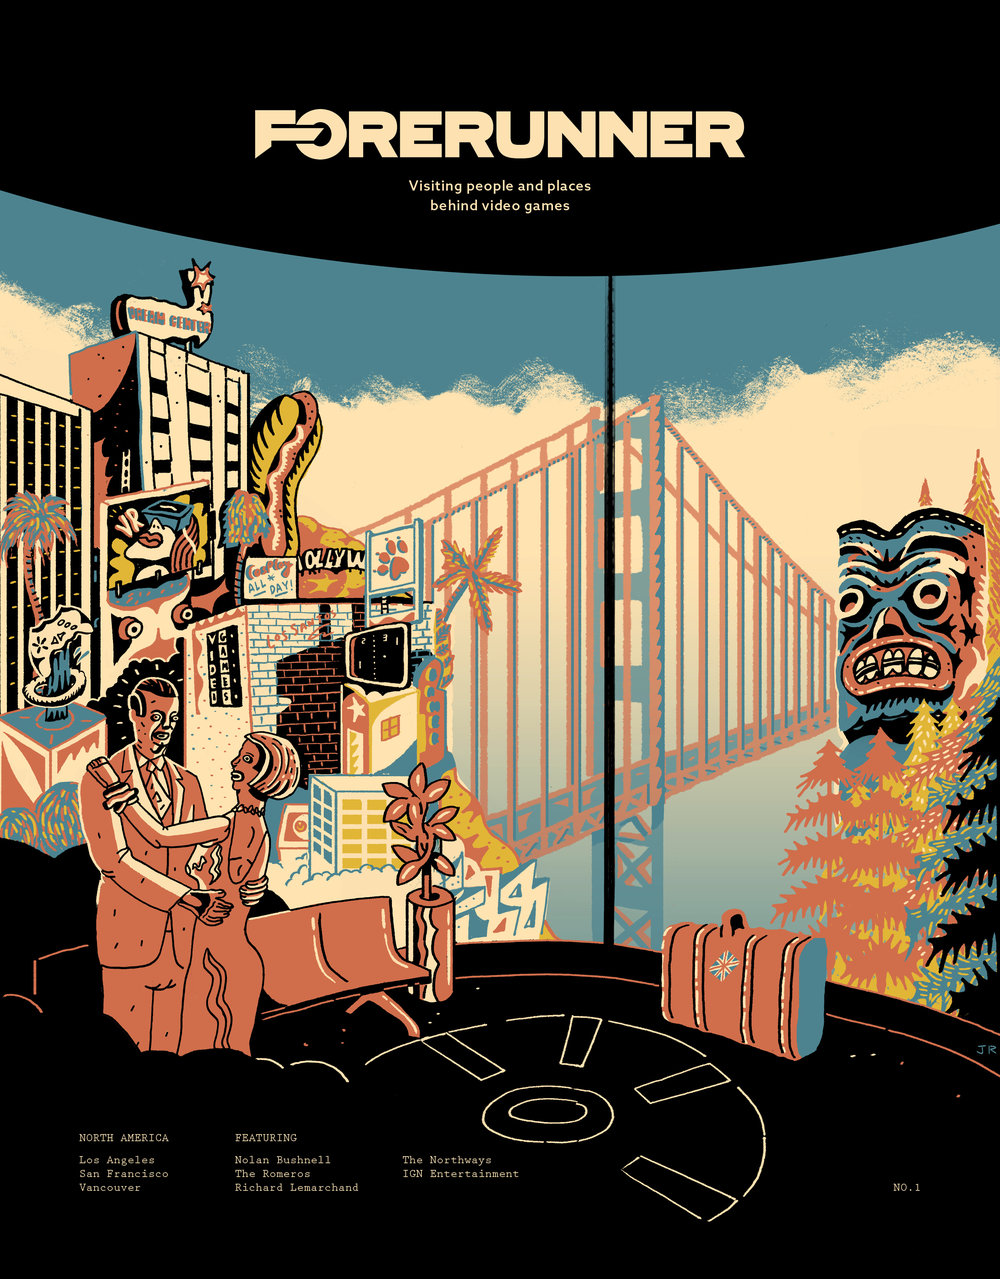 'Issue 1 Cover'   As a reportage illustrator, I travelled around West Coast America with a London based video game magazine called Forerunner.  The contents of my work manifested itself into issue 1 of the magazine.